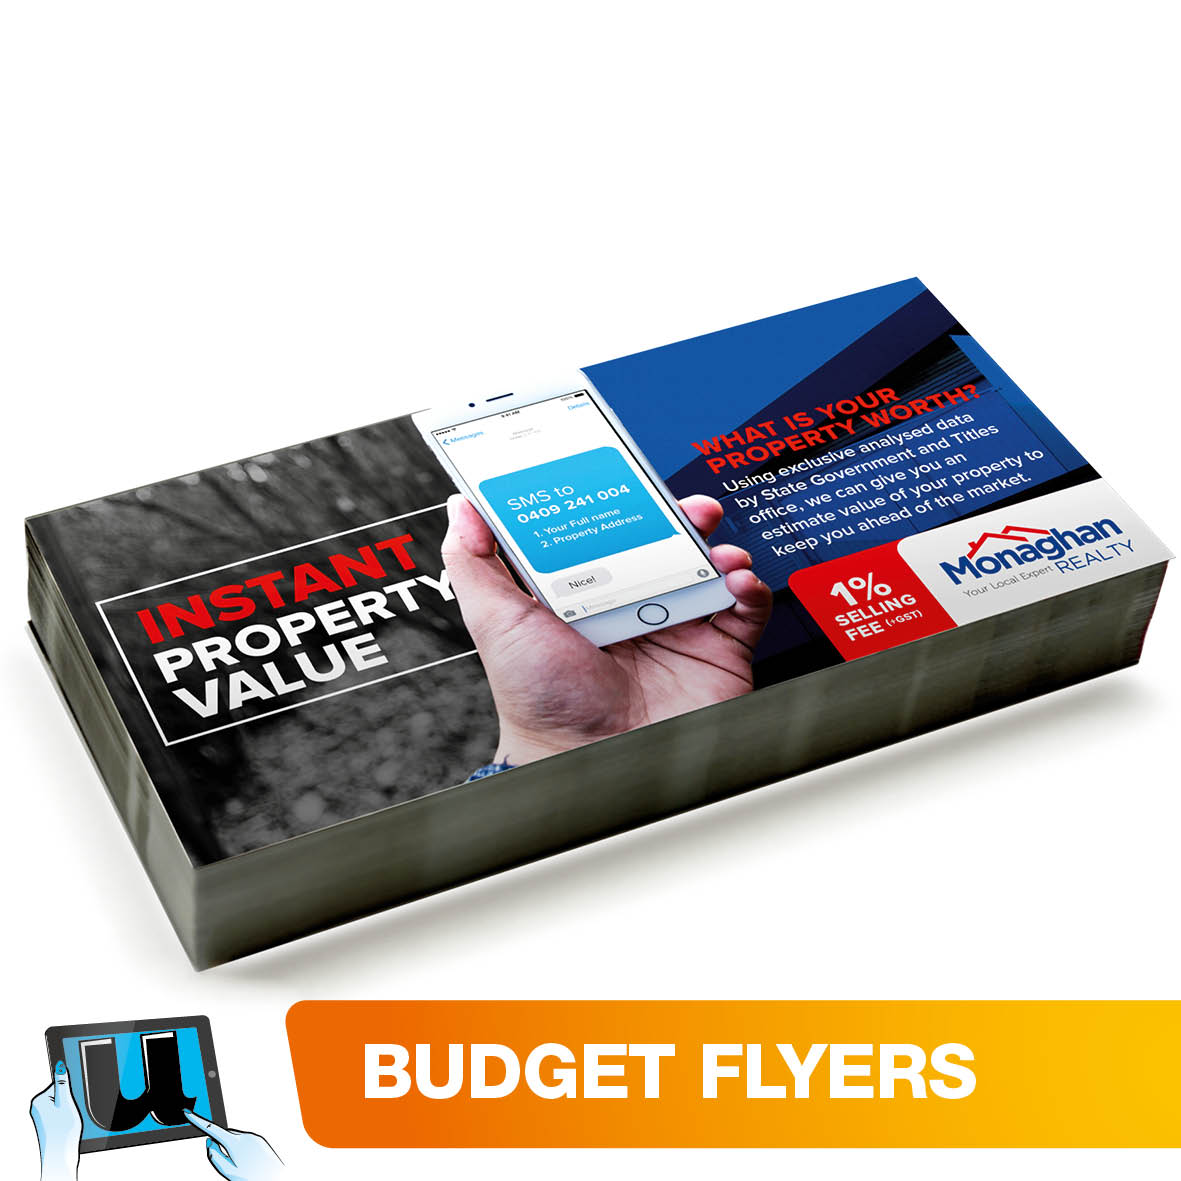 Budget Flyers